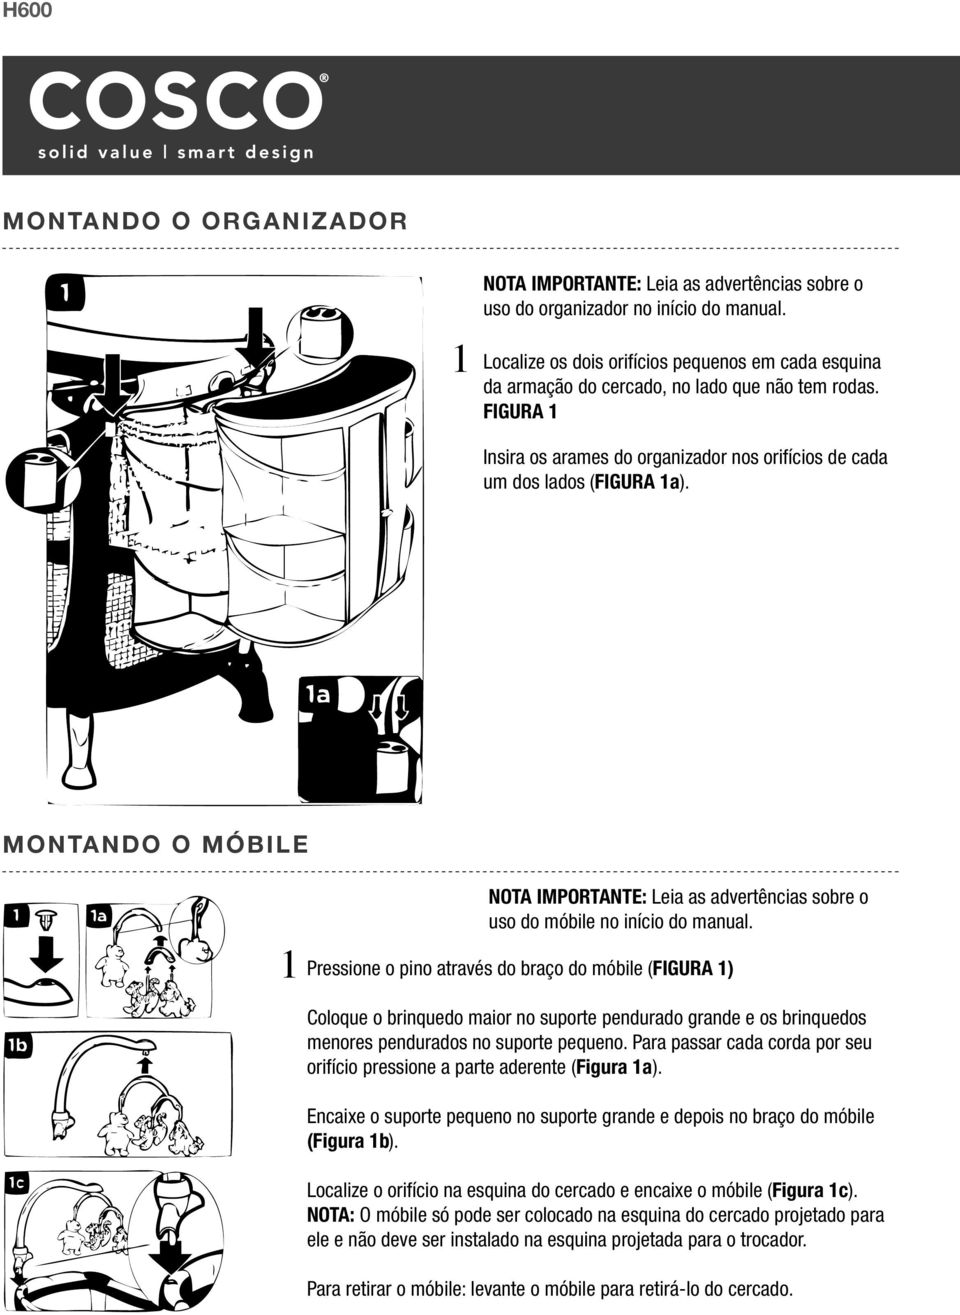 MONTANDO O MÓBILE NOTA IMPORTANTE: Leia as advertências sobre o uso do móbile no início do manual.